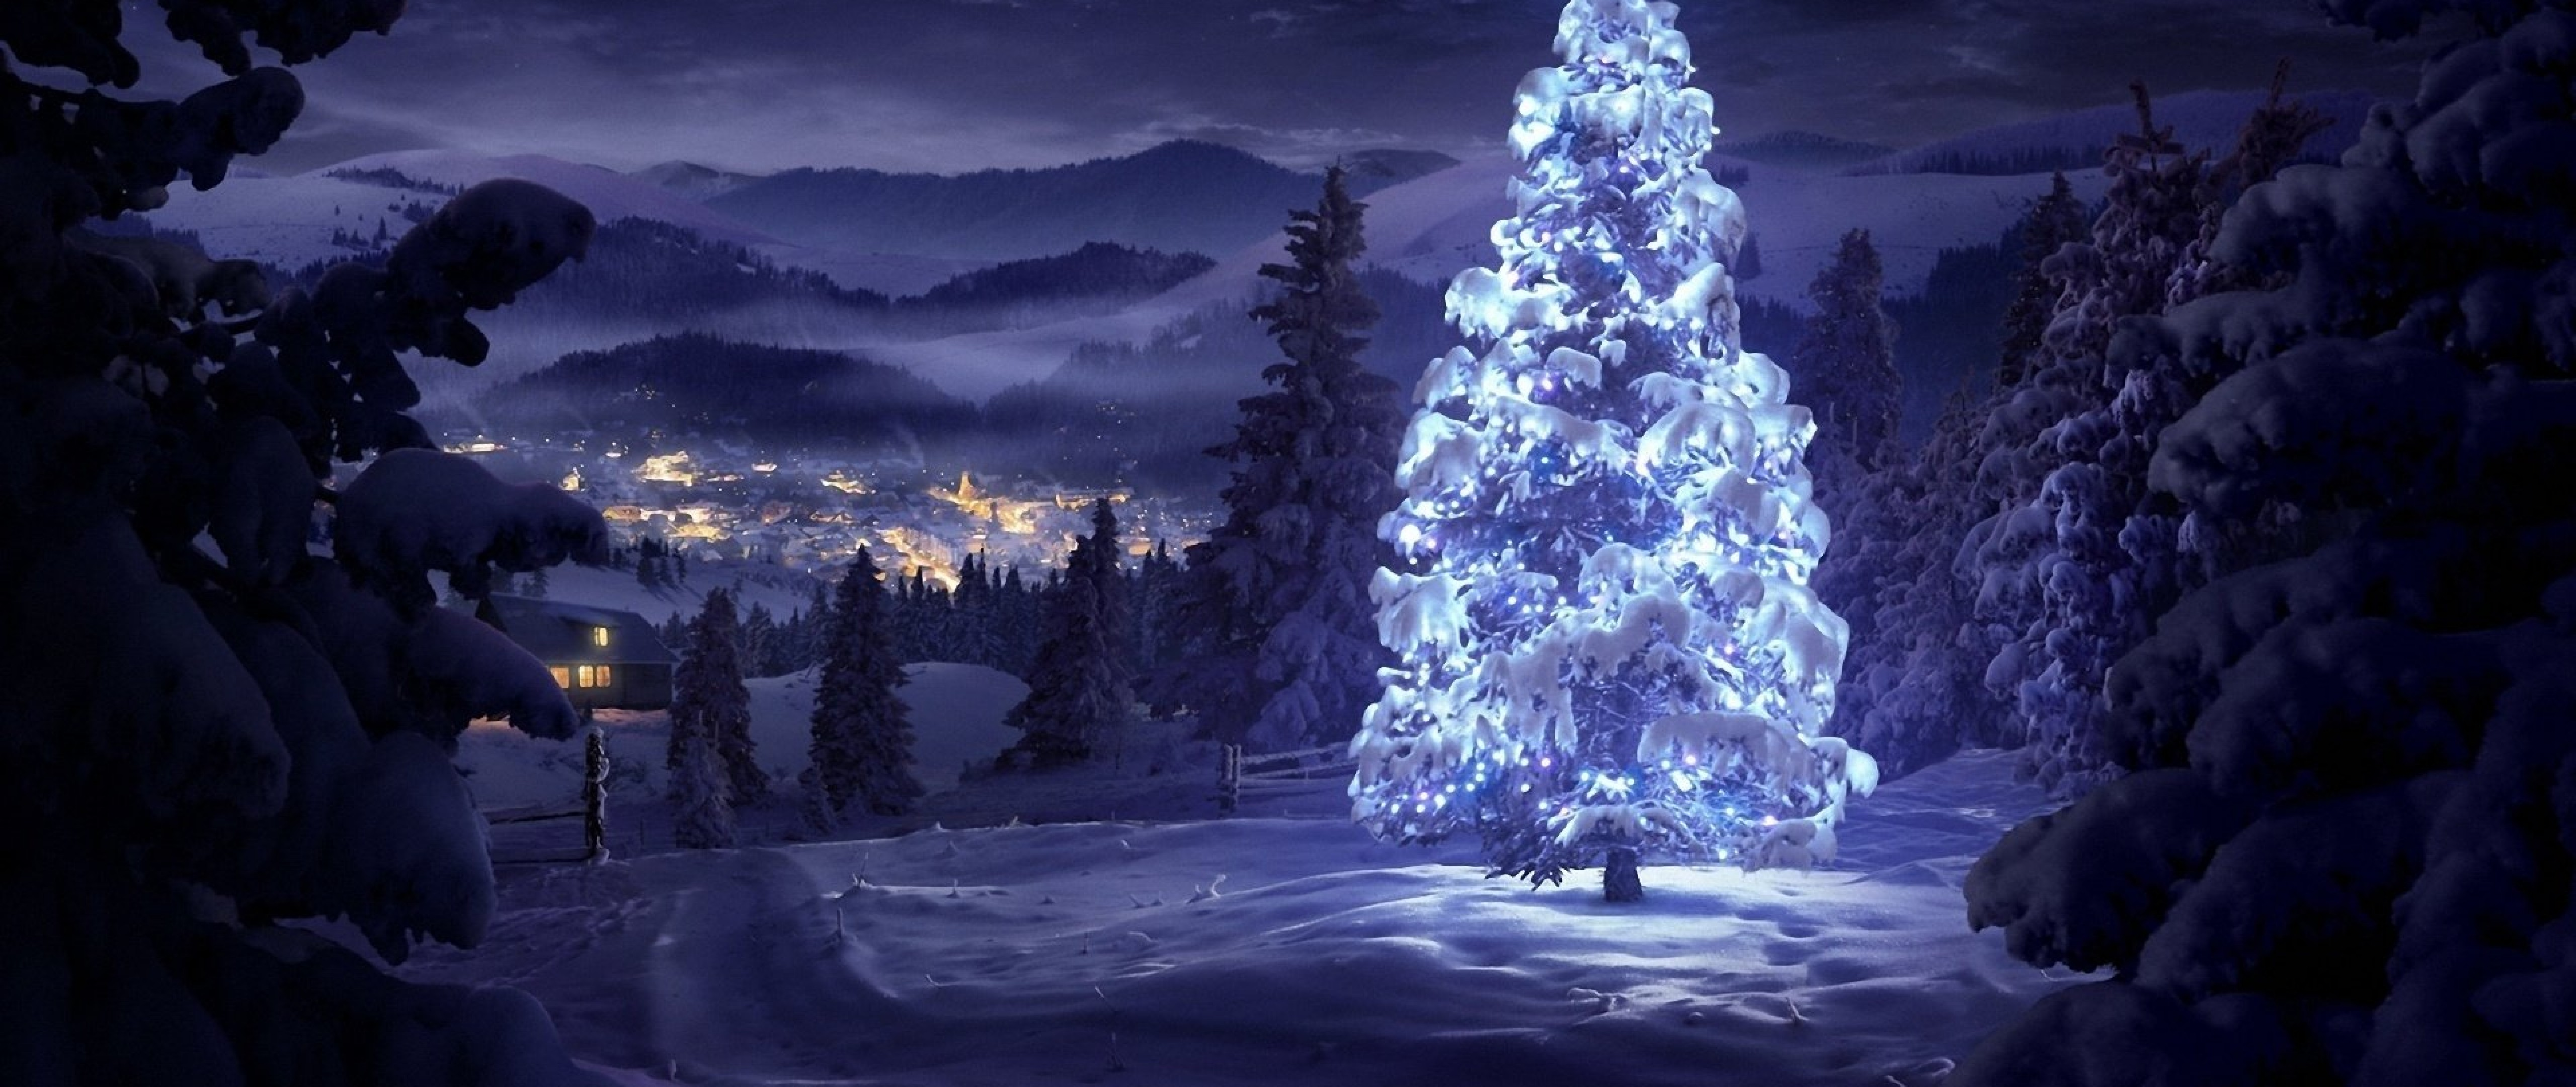 Xmas Tree Covered In Snow Hd Wallpaper 4k Ultra Hd Wide Tv